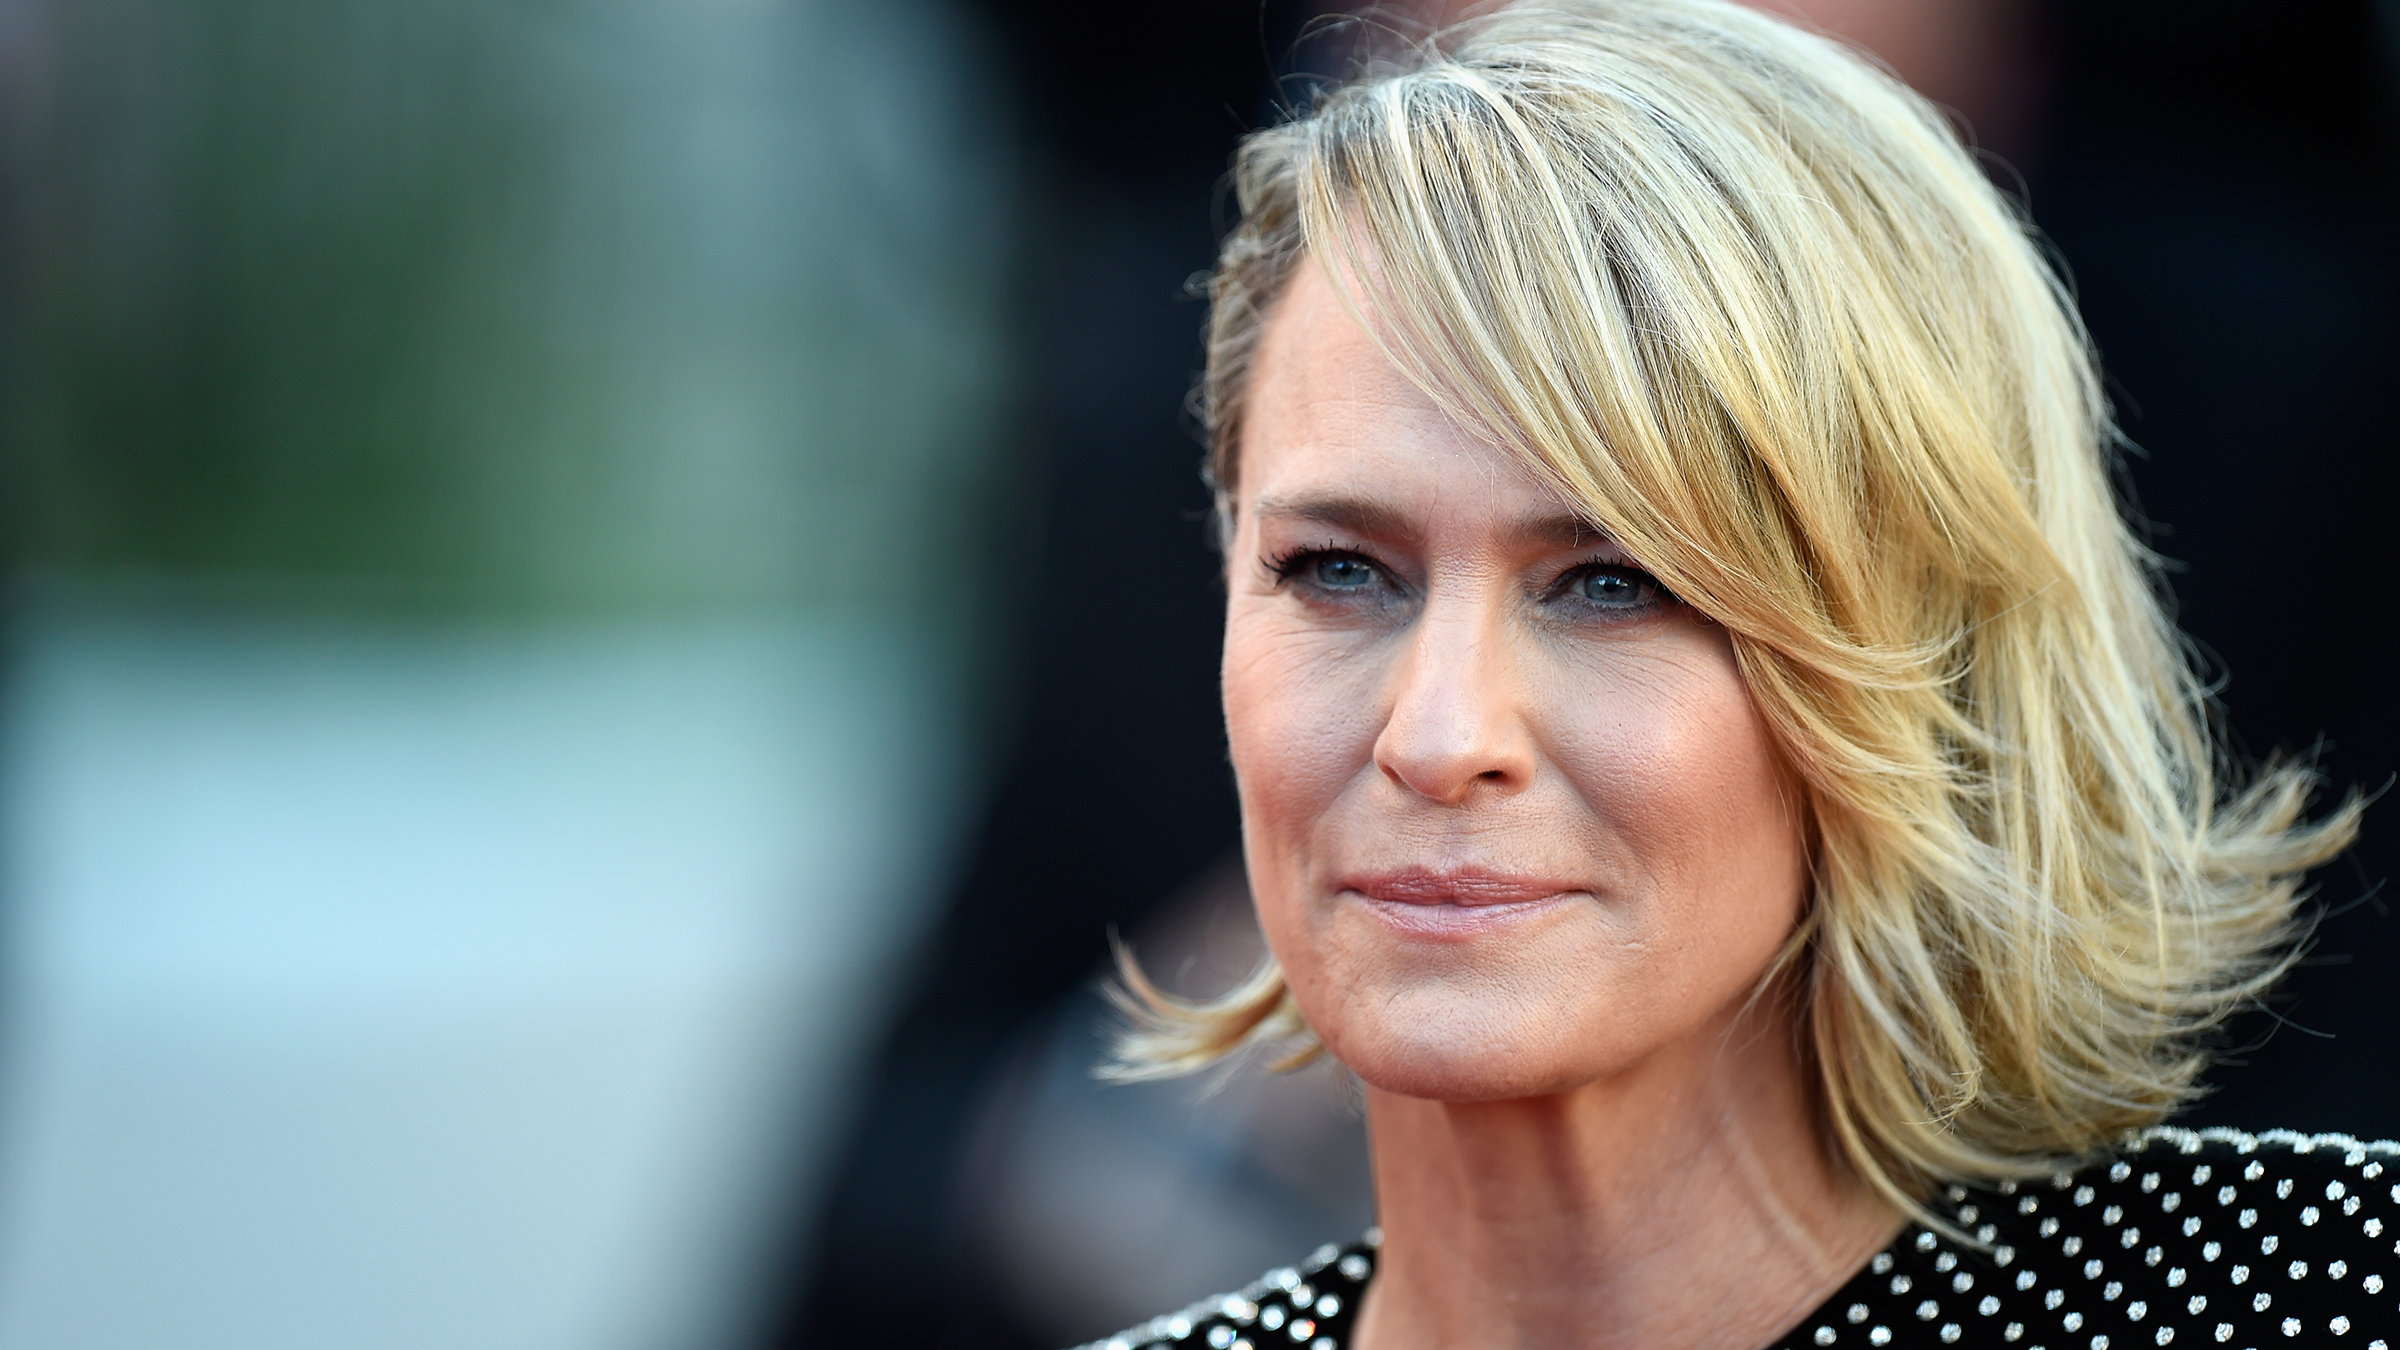 'House Of Cards' Star Robin Wright Breaks Her Silence On Kevin Spacey: 'I Didn't Know The Man' Read more at http://www.accessonline.com/articles/house-cards-star-robin-wright-breaks-her-silence-kevin-spacey-i-didnt-know-man/#QmQxPBmOzr4OF5R0.99